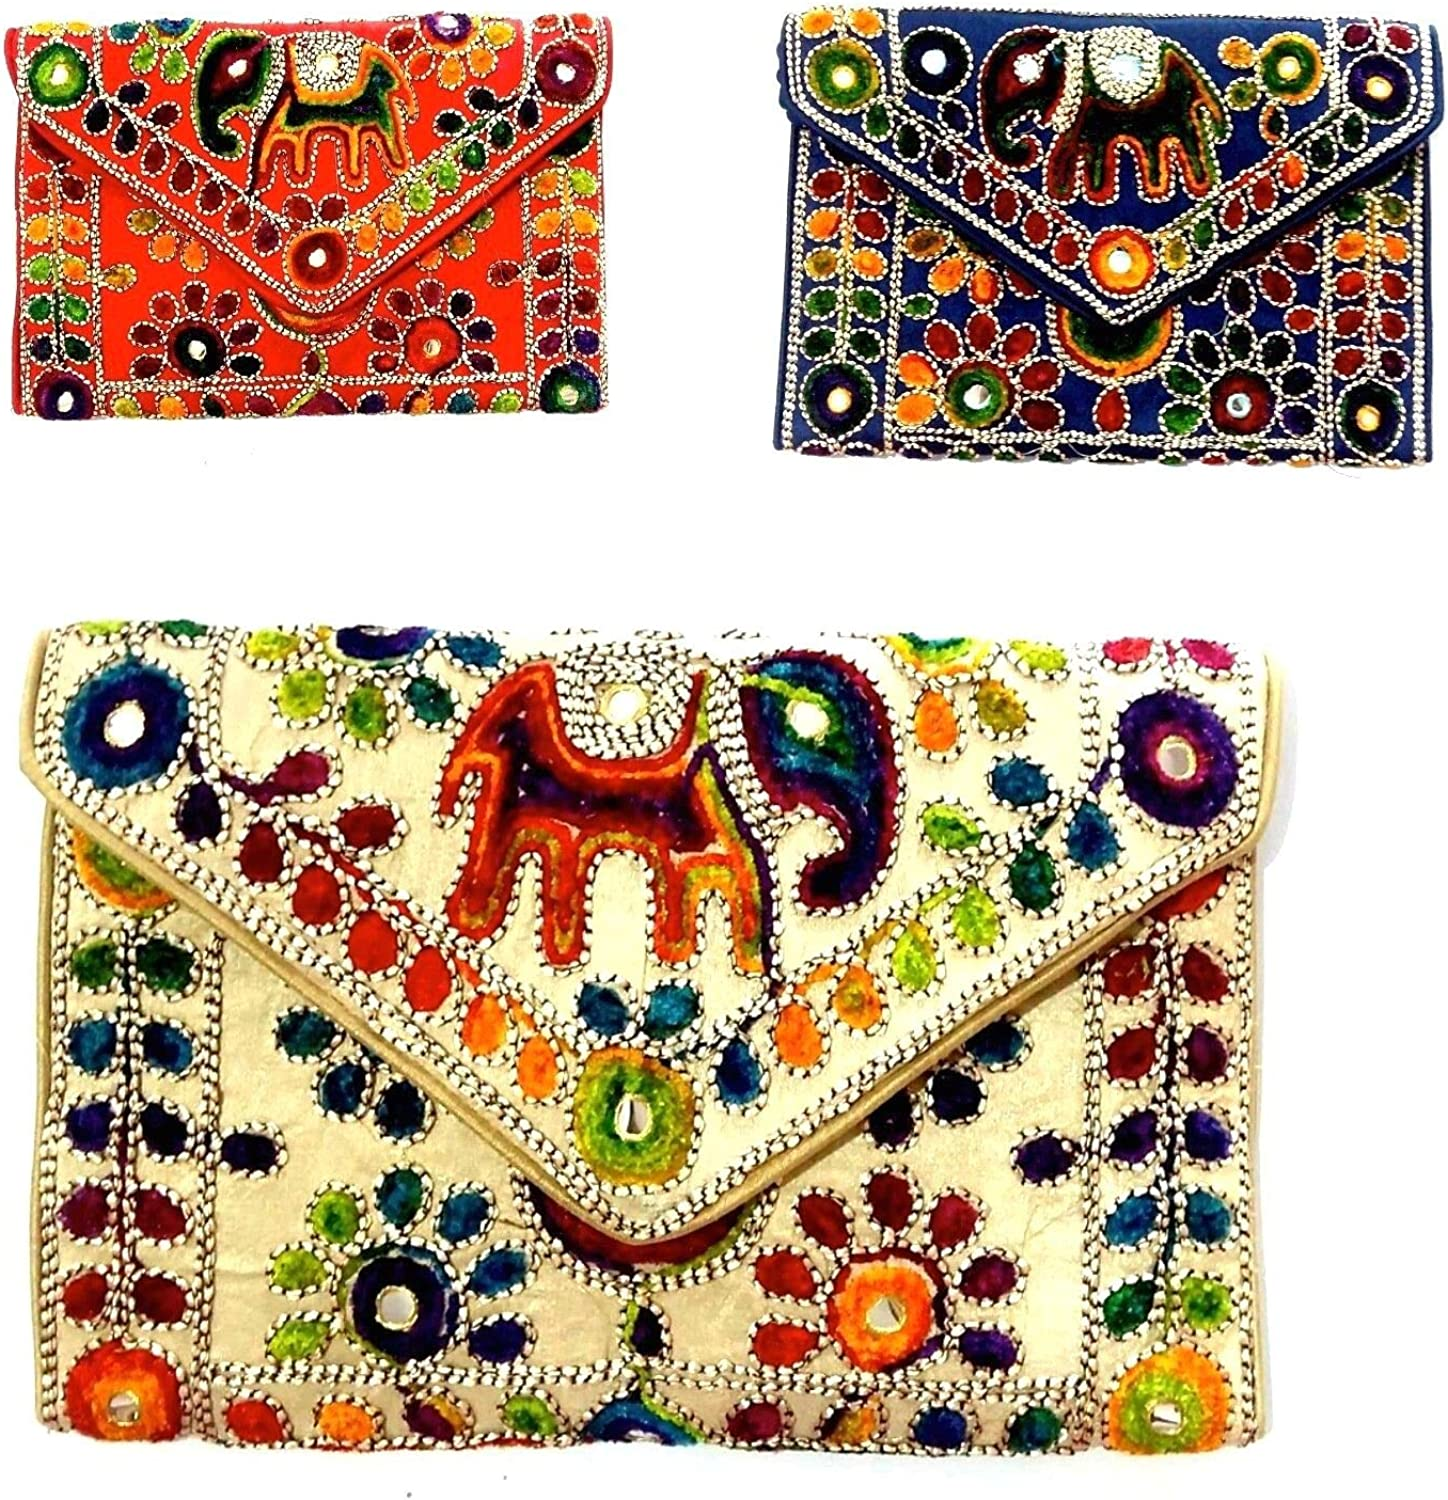 Indian Wholesale 50 pc lot Bulk Mandala Hand Bag Ethnic Clutches Purse Shoulder Assorted for Ladies by Panchal Creation-66